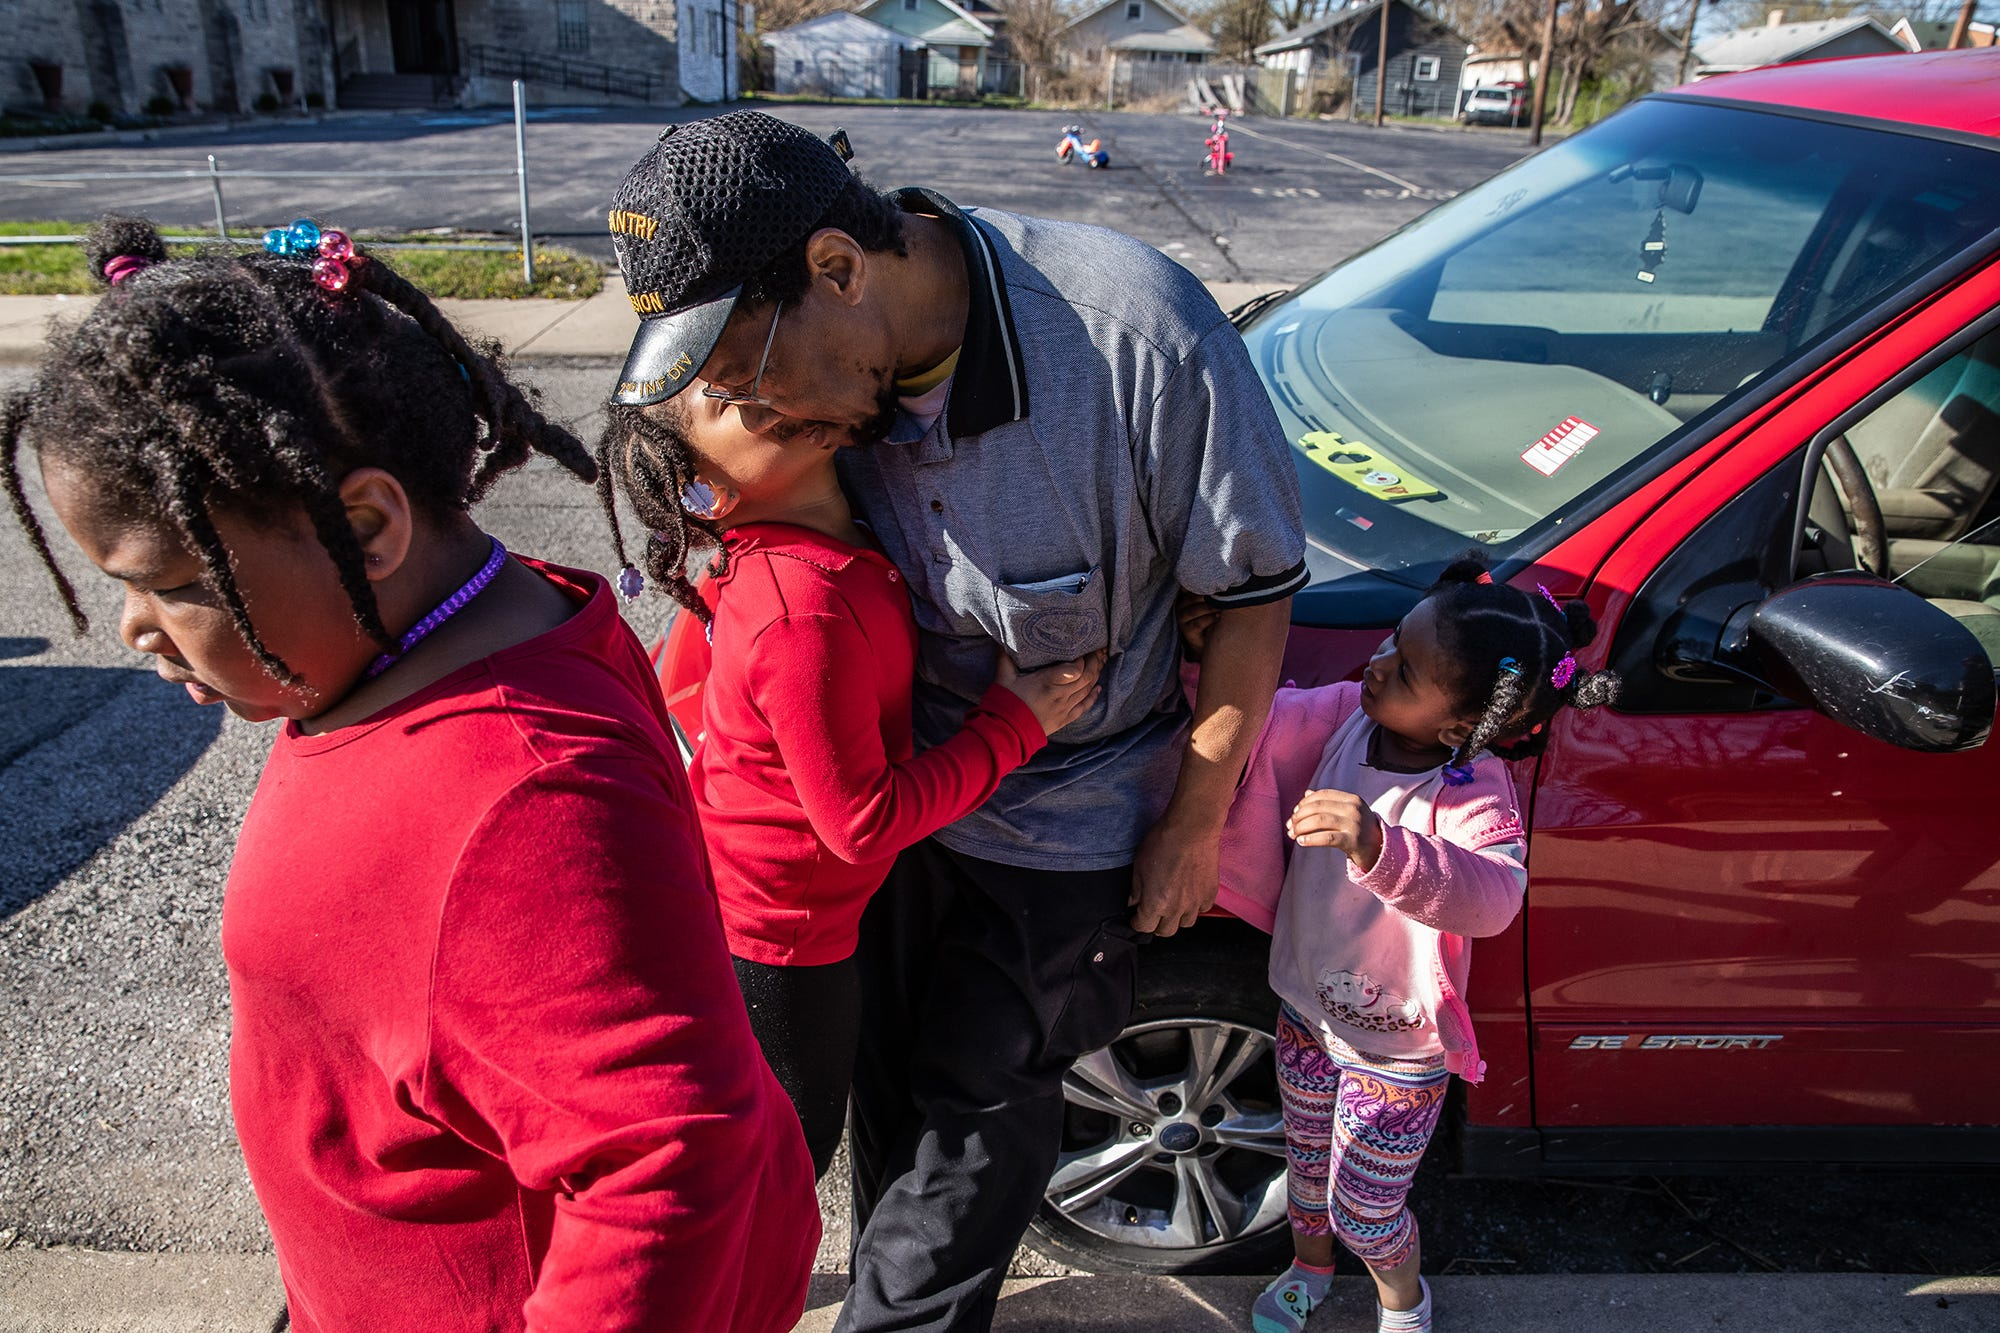 """Robert O'Neil gets a hug from each of his girls, Mary, 8, Adriane, 6, and Angel, 3, on Monday, April 15, 2019. O'Neil is a single father of four, three girls and one boy, Antonio, 11. """"I'm an old guy, I'm not a spring chicken no more, you know what I mean?"""" said Robert. """"Having them kind of makes me feel young, they keep me going."""" The mother of the four children suffers from chemical and substance abuse, which is why, according to O'Neil, he is raising the children alone."""